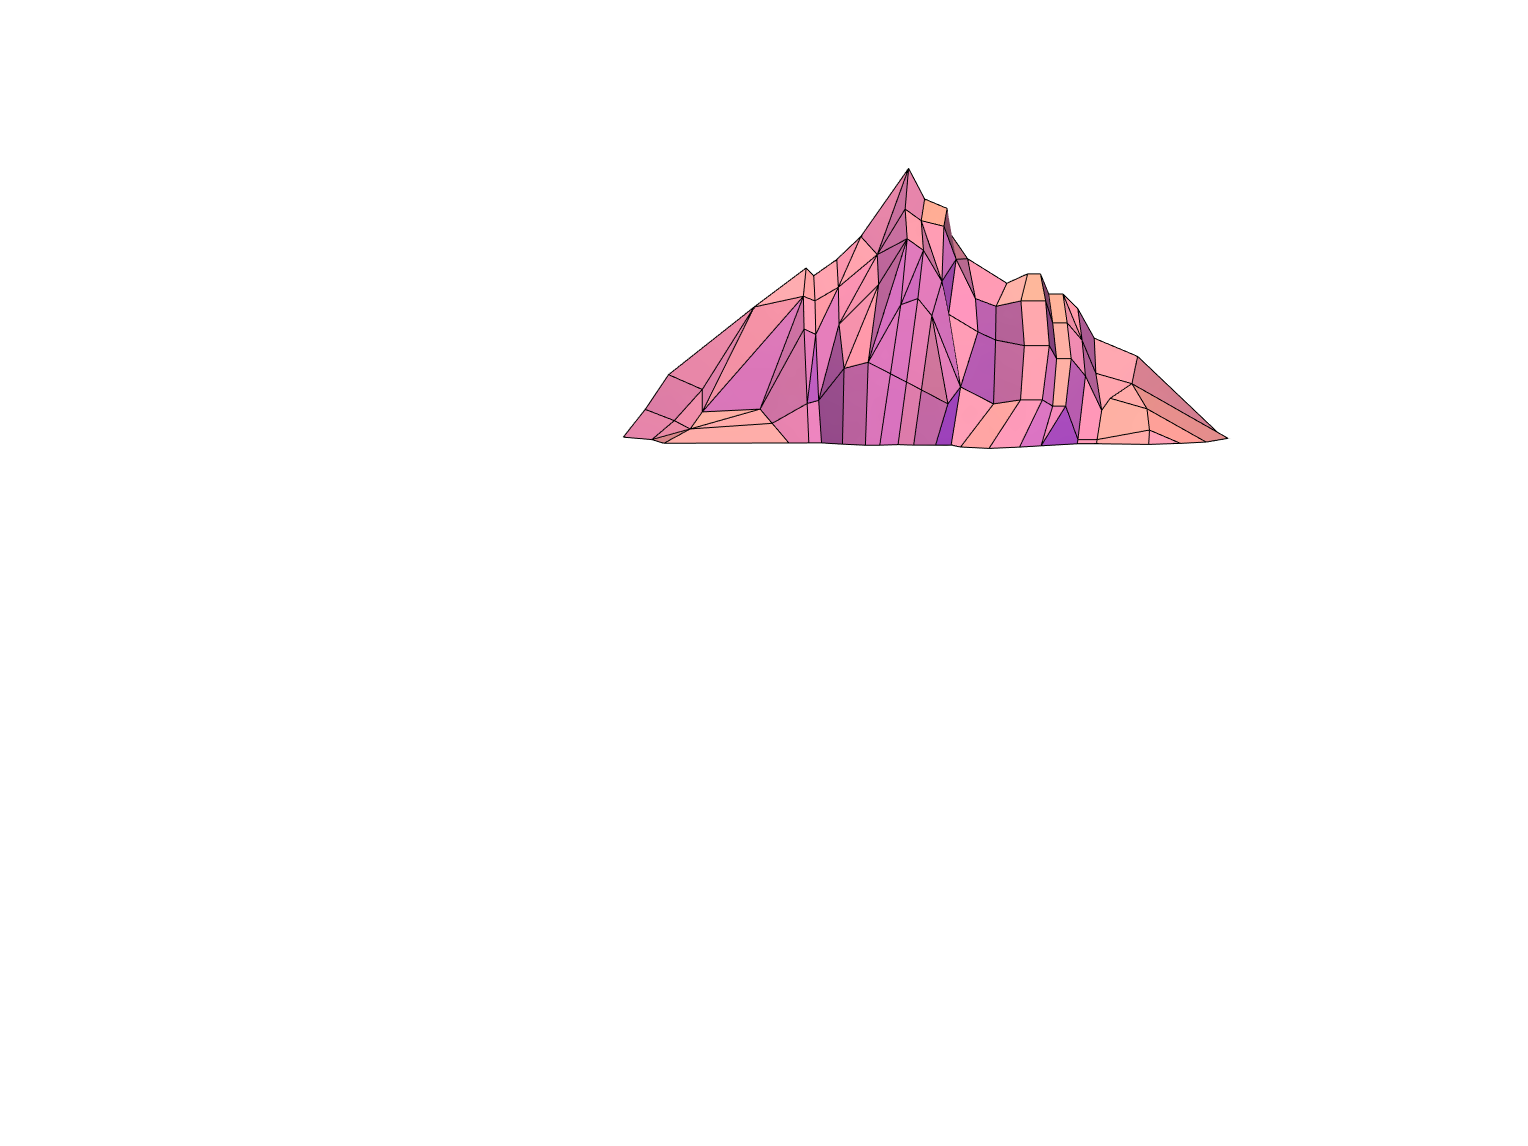 mountain - 3D design by Miko D. Santos Apr 6, 2018